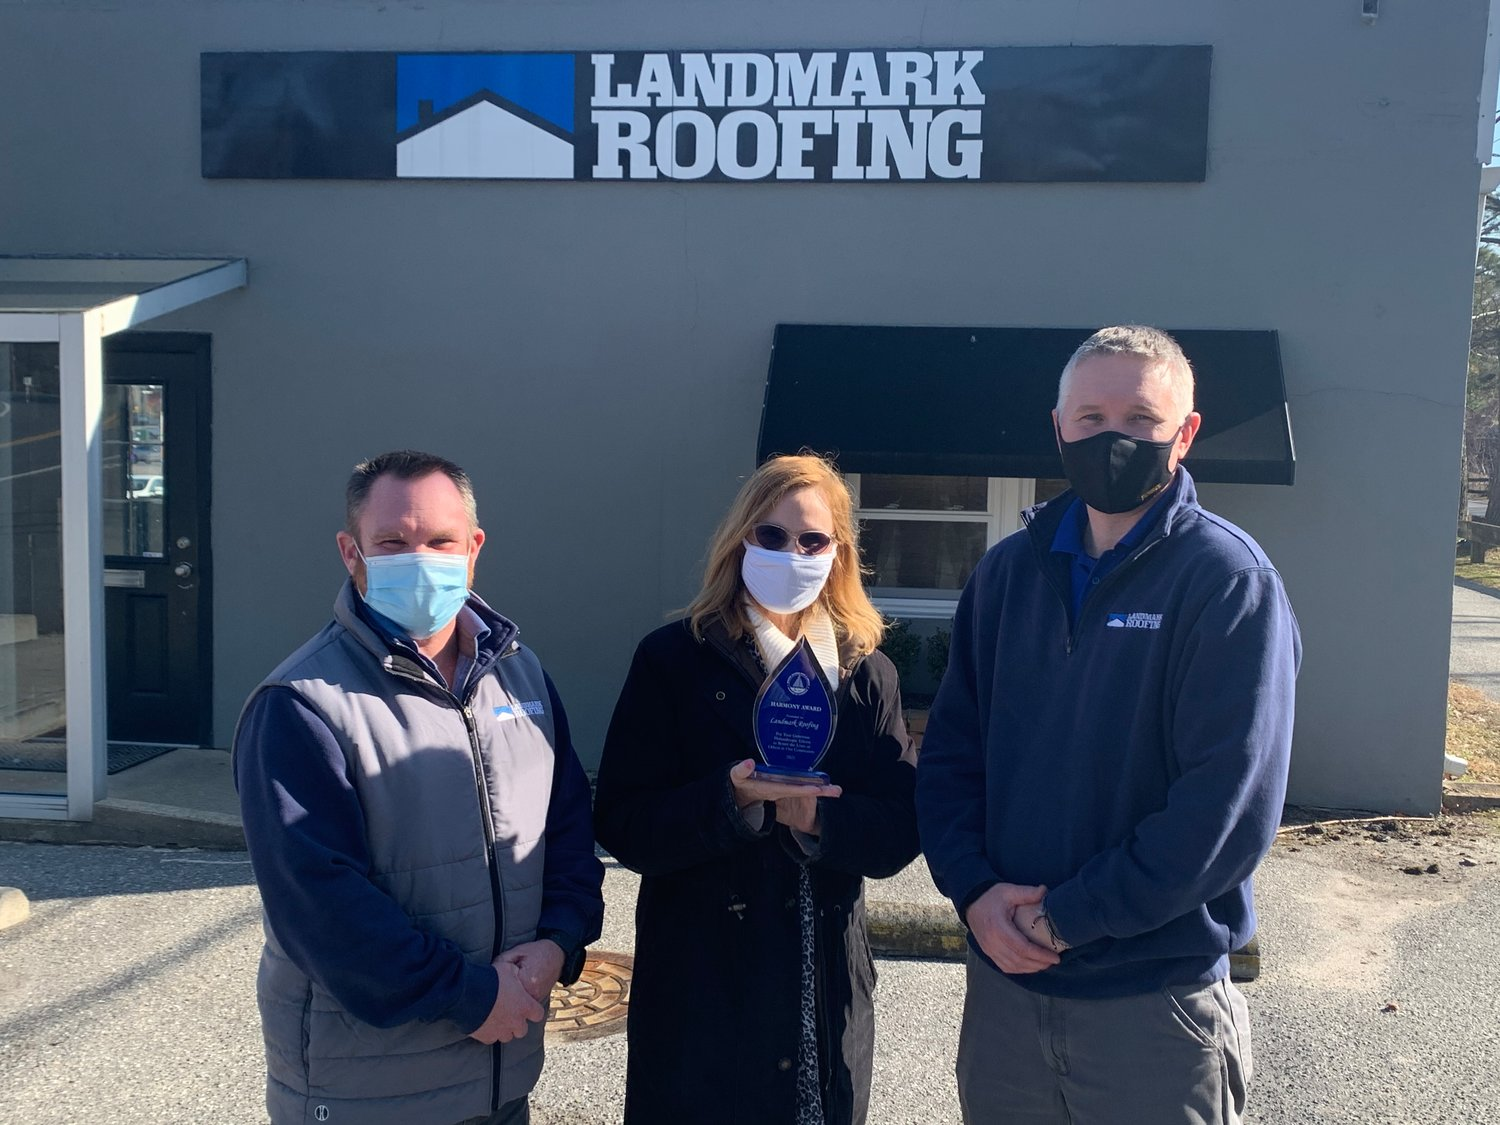 Greater Severna Park and Arnold Chamber of Commerce CEO Liz League presented Landmark Roofing owners Rob Calhan (left) and Artie Hendricks with this year's Harmony Award in recognition of giving back to the community.